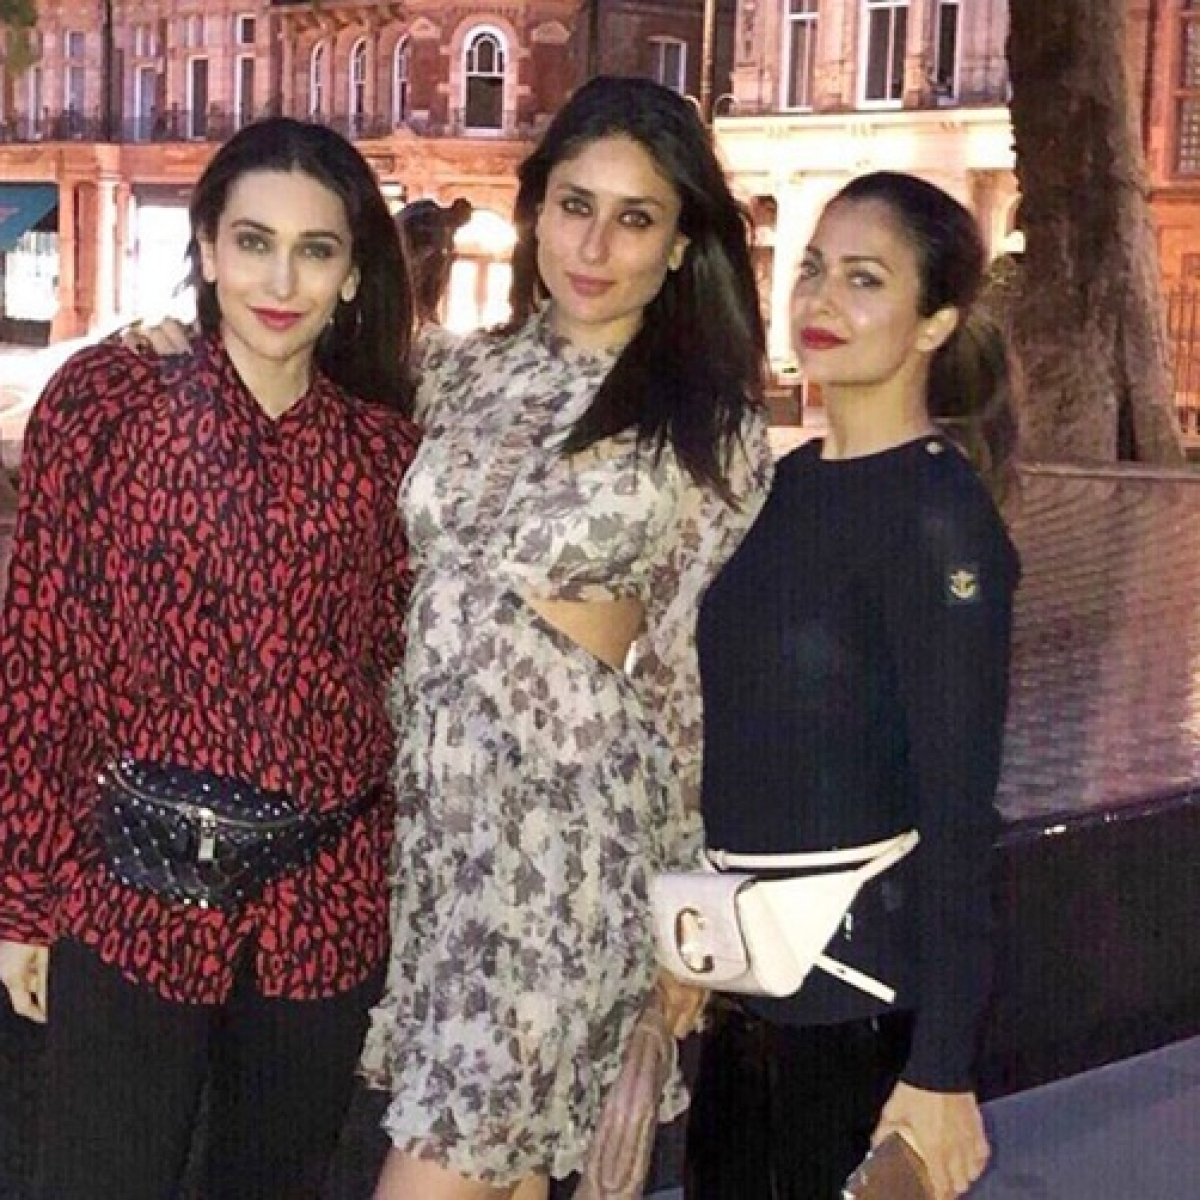 Glamorous trio Karisma Kapoor, Kareena Kapoor, Amrita Arora relish their London vacay